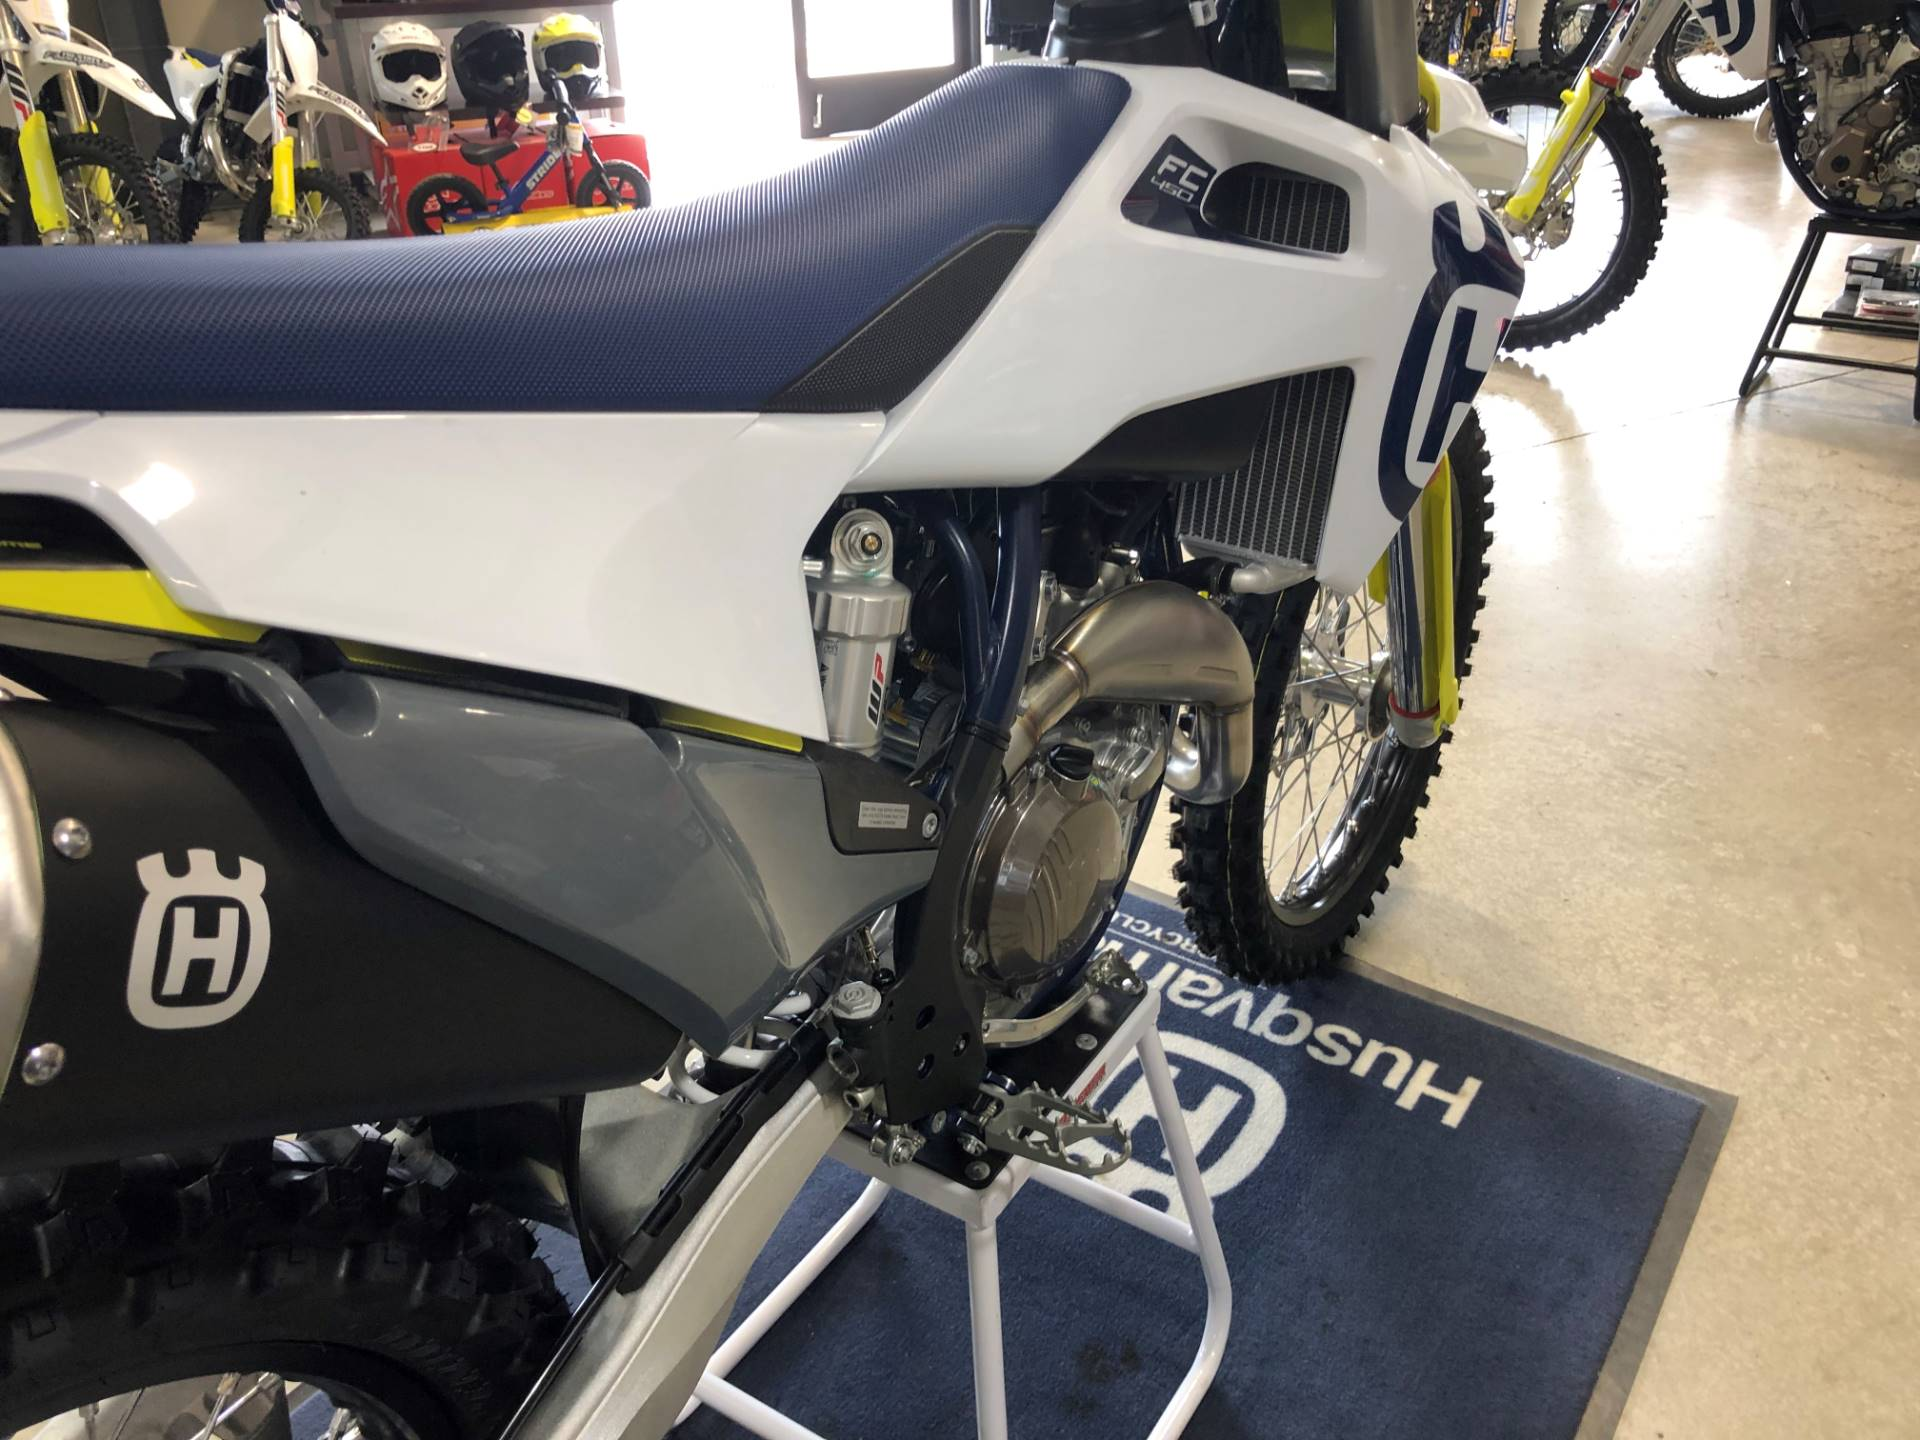 2020 Husqvarna FC 450 in Slovan, Pennsylvania - Photo 3